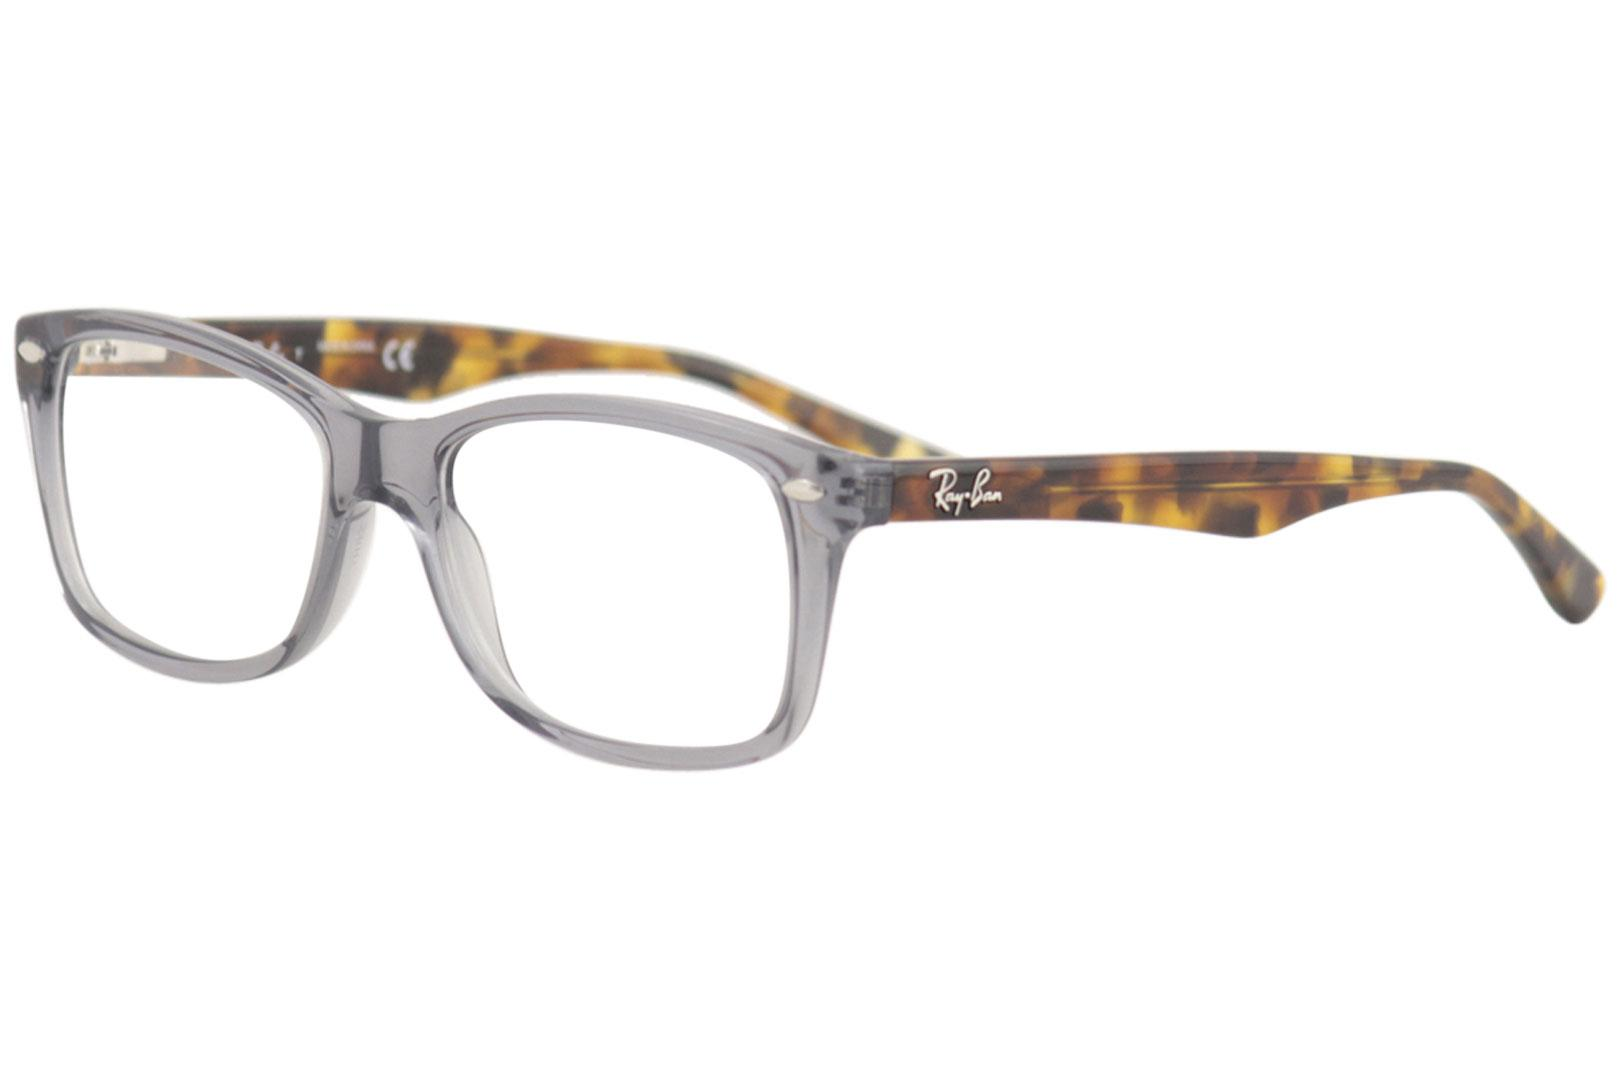 Ray Ban Women s Eyeglasses RX5228 RX 5228 5629 Opal Grey Optical ... b974a0154f